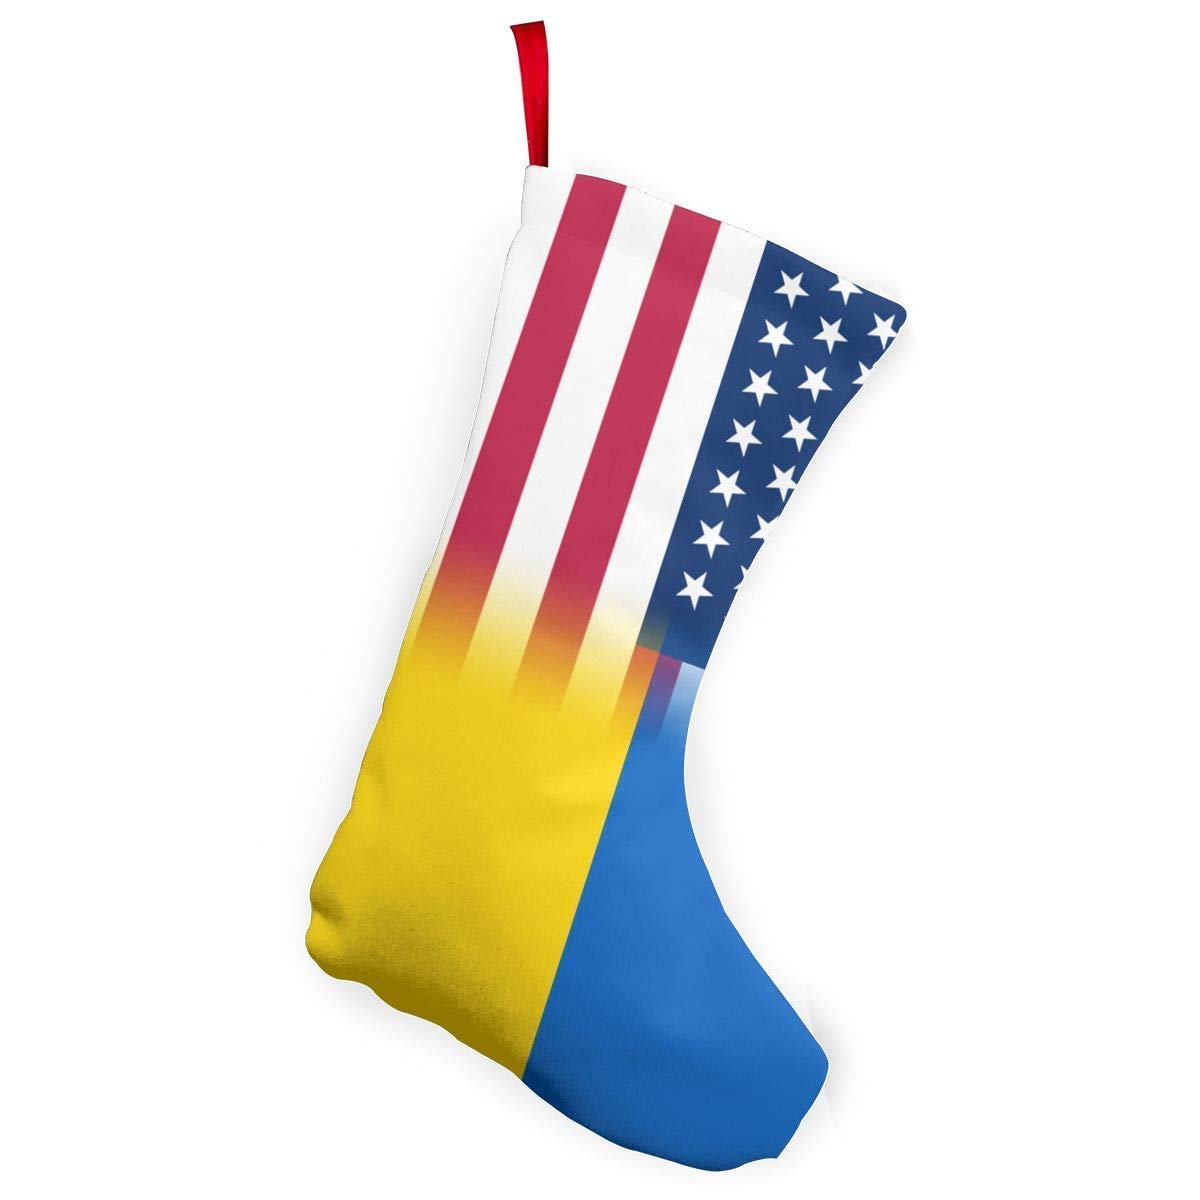 But why miss USA Ukraine Flag Christmas Stocking Santa Claus Gift Party Accessory Xmas Tree Decor Festival Party Ornament